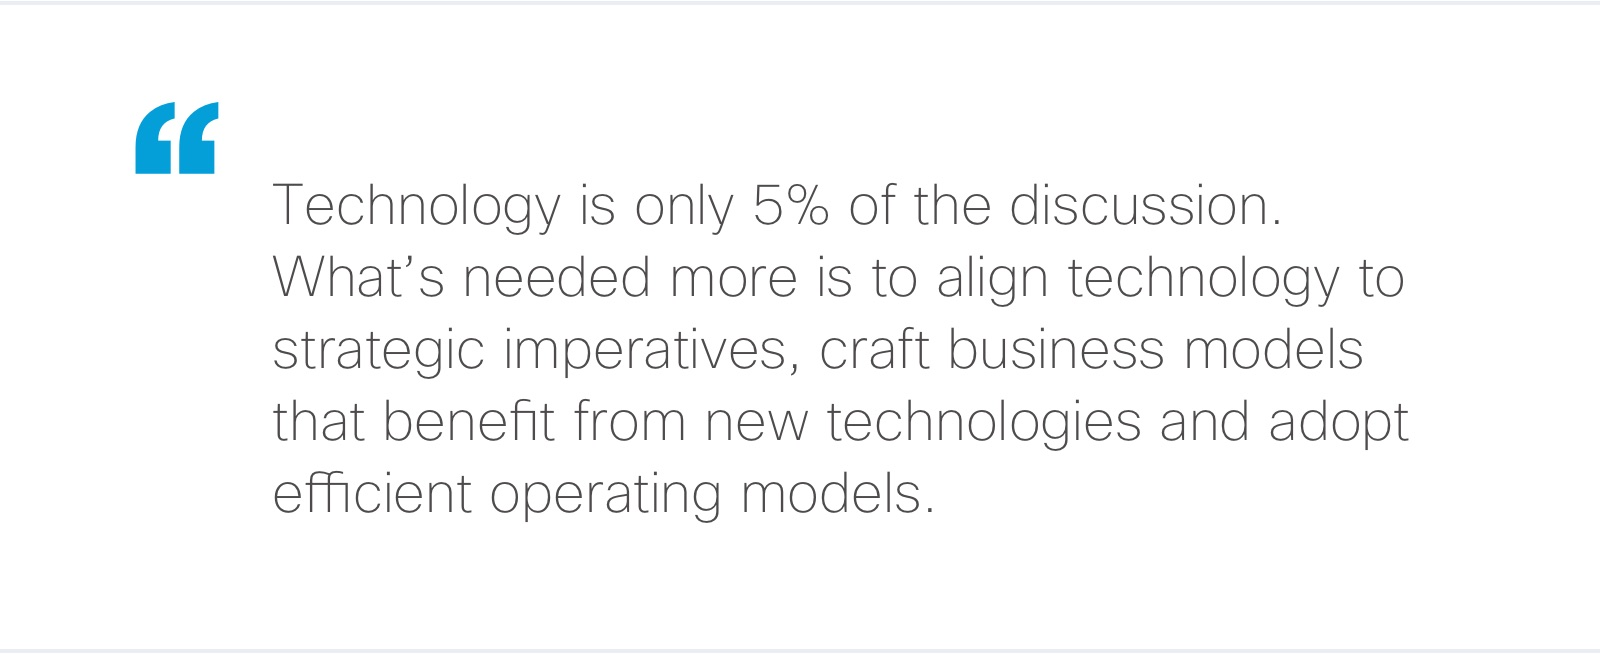 Technology is only 5% of the discussion. What's needed more is to align technology to strategic initiatives, craft business models that benefit from new technologies and adopt efficient operating models.